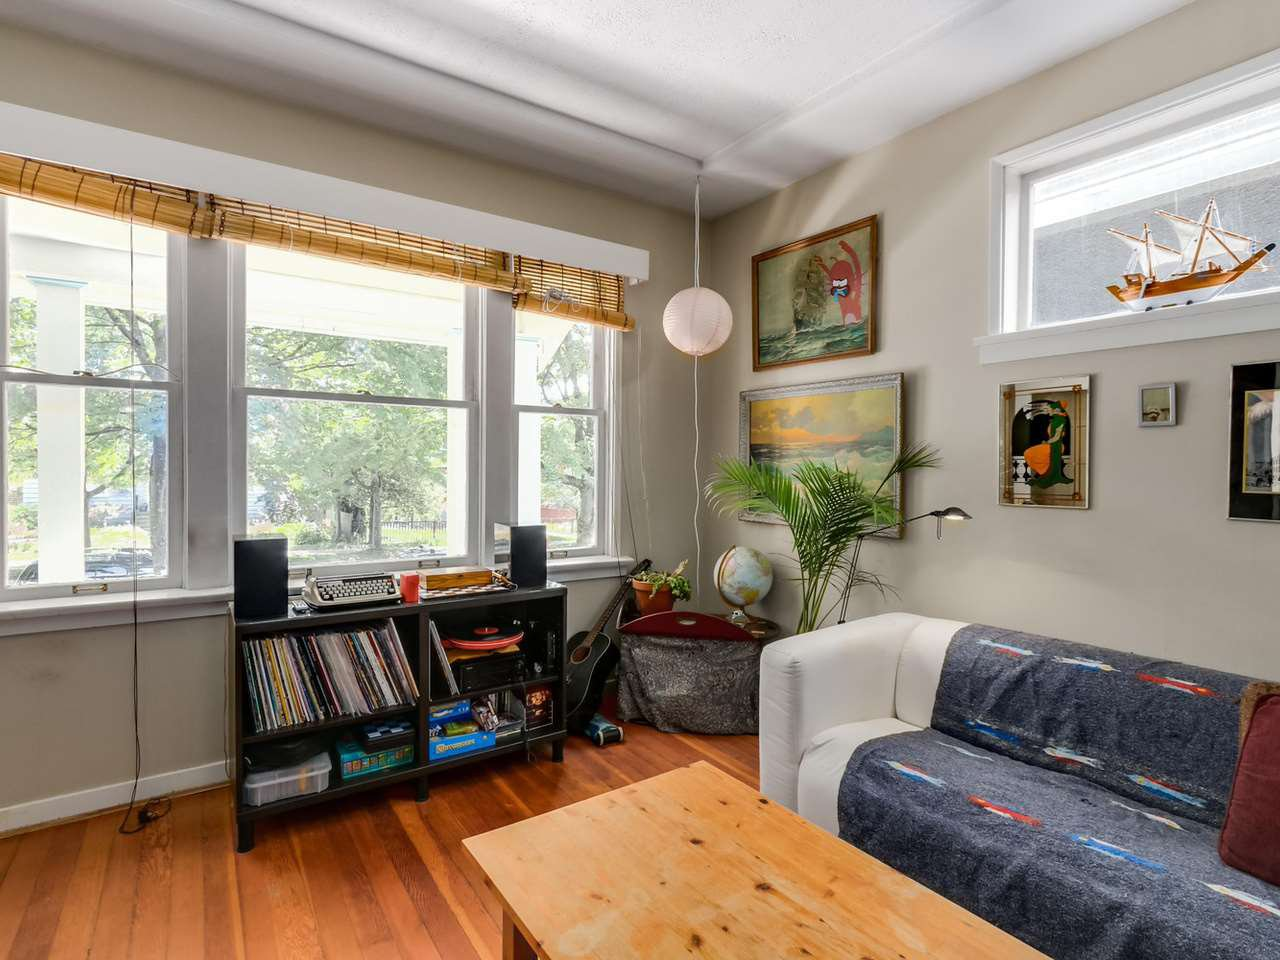 """Photo 4: Photos: 835 E 19TH Avenue in Vancouver: Fraser VE House for sale in """"CEDAR COTTAGE"""" (Vancouver East)  : MLS®# R2071745"""